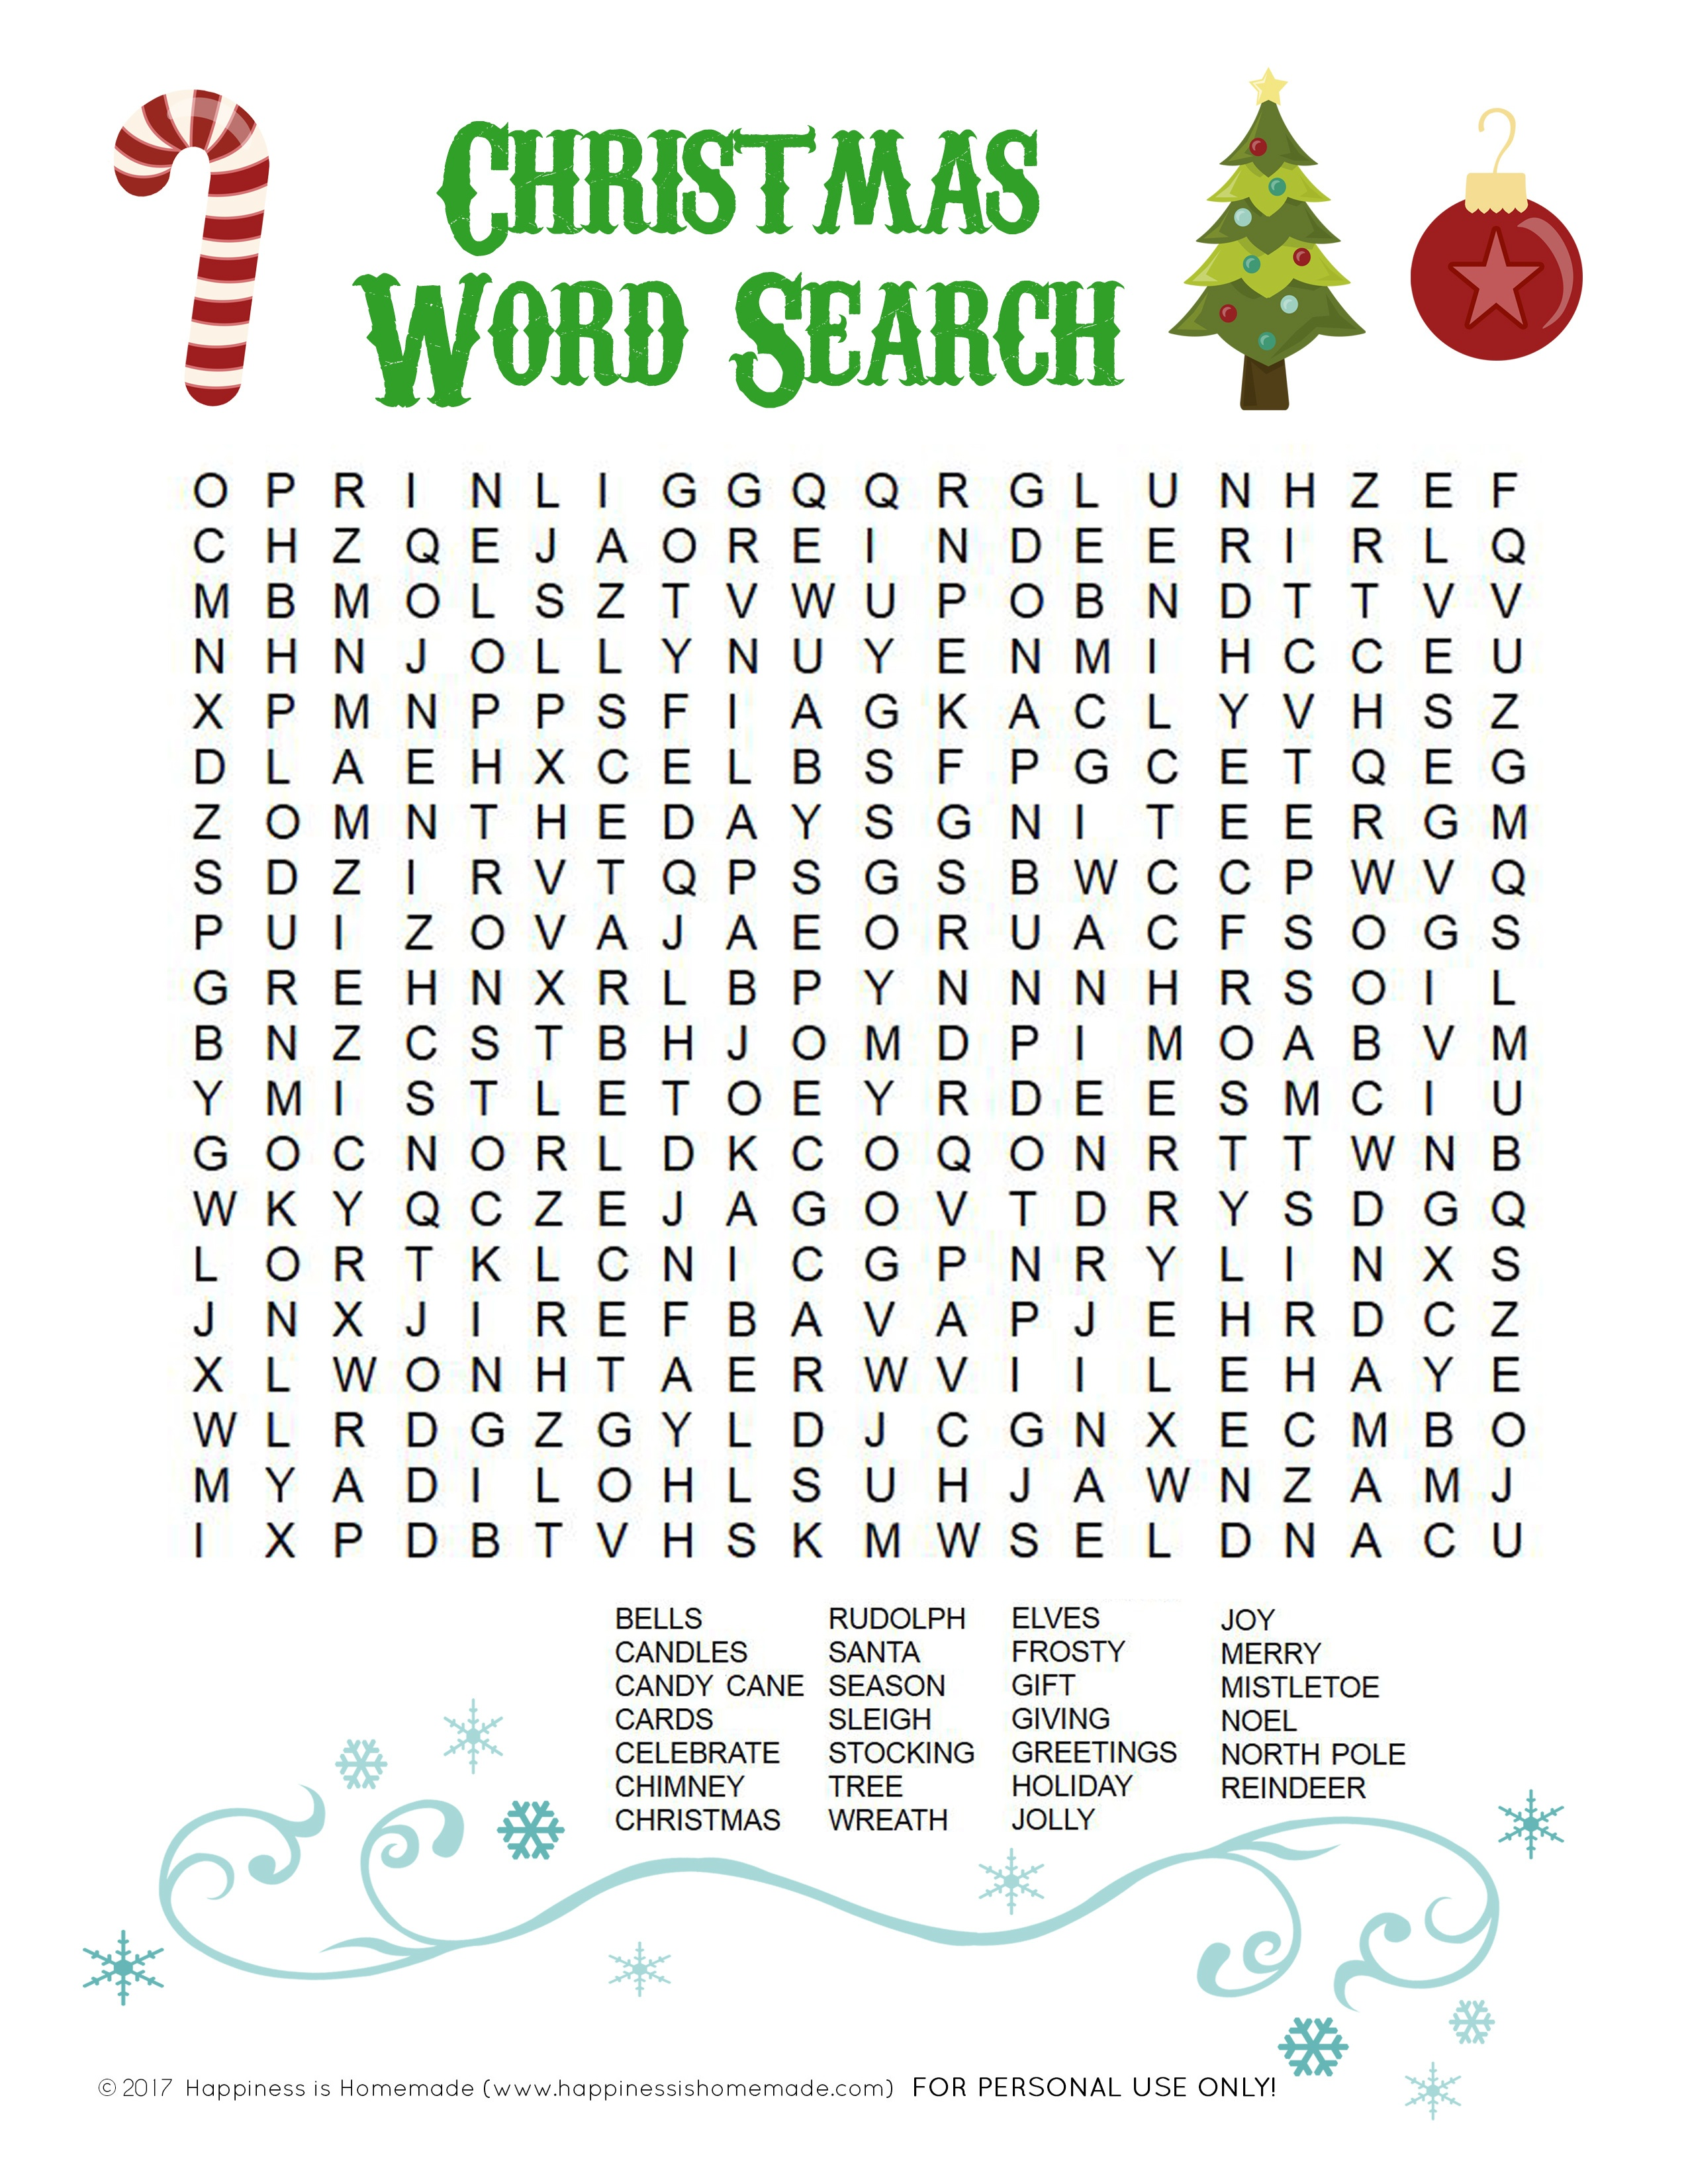 Printable Christmas Word Search For Kids & Adults - Happiness Is - Free Printable Christmas Puzzles And Games